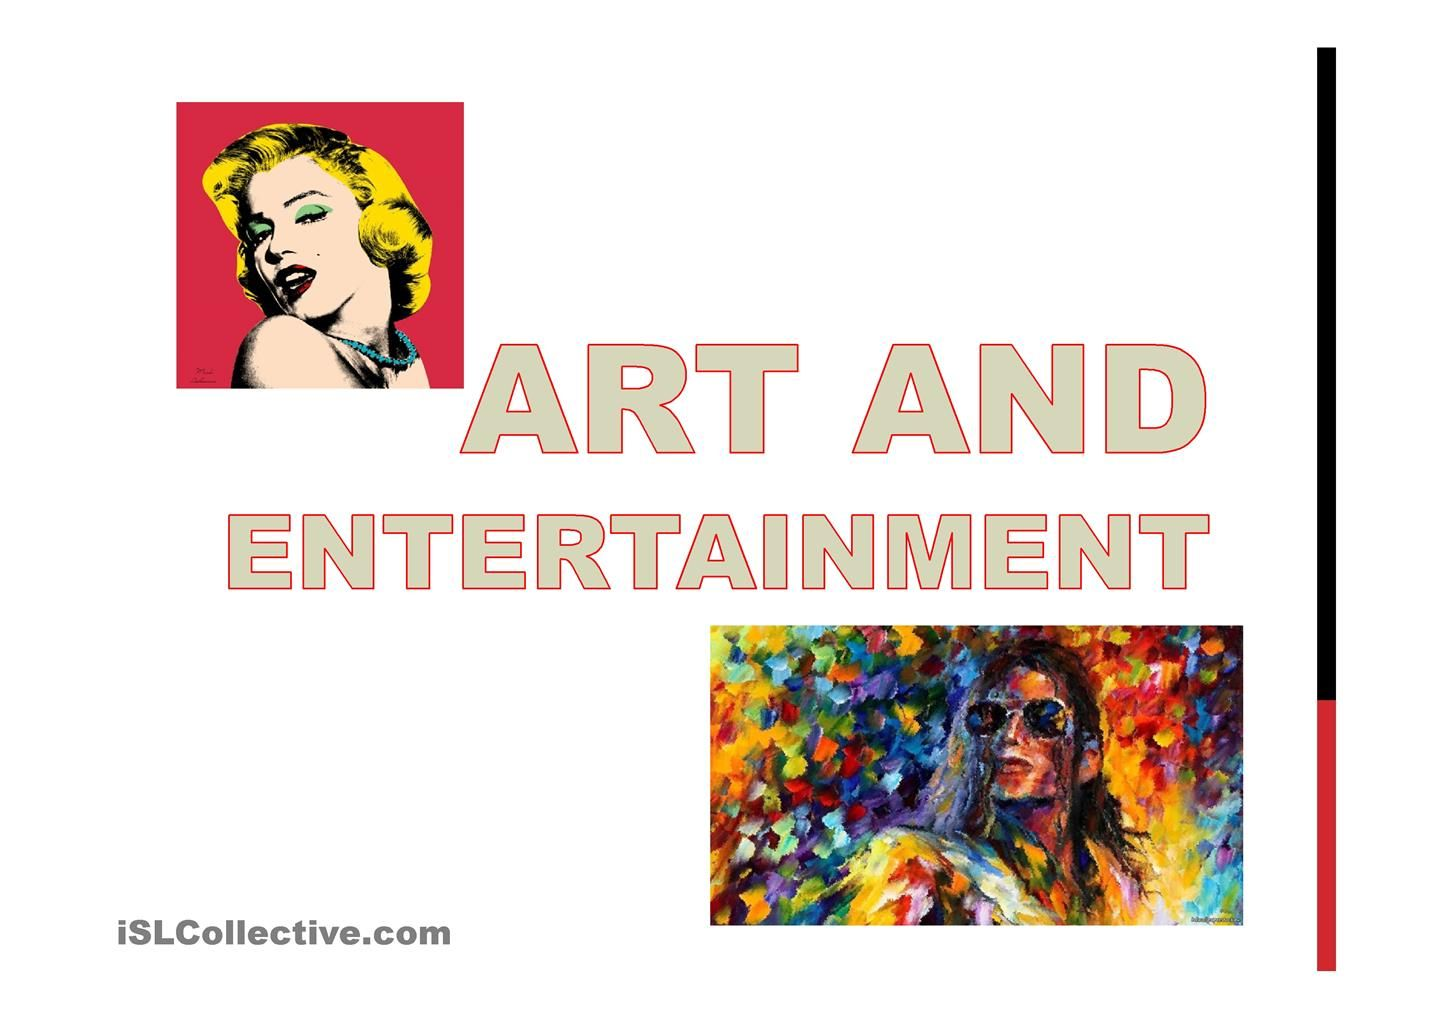 Art And Entertainment Esl Powerpoint Esl Powerpoint Worksheet Of The Day Of April 22 By